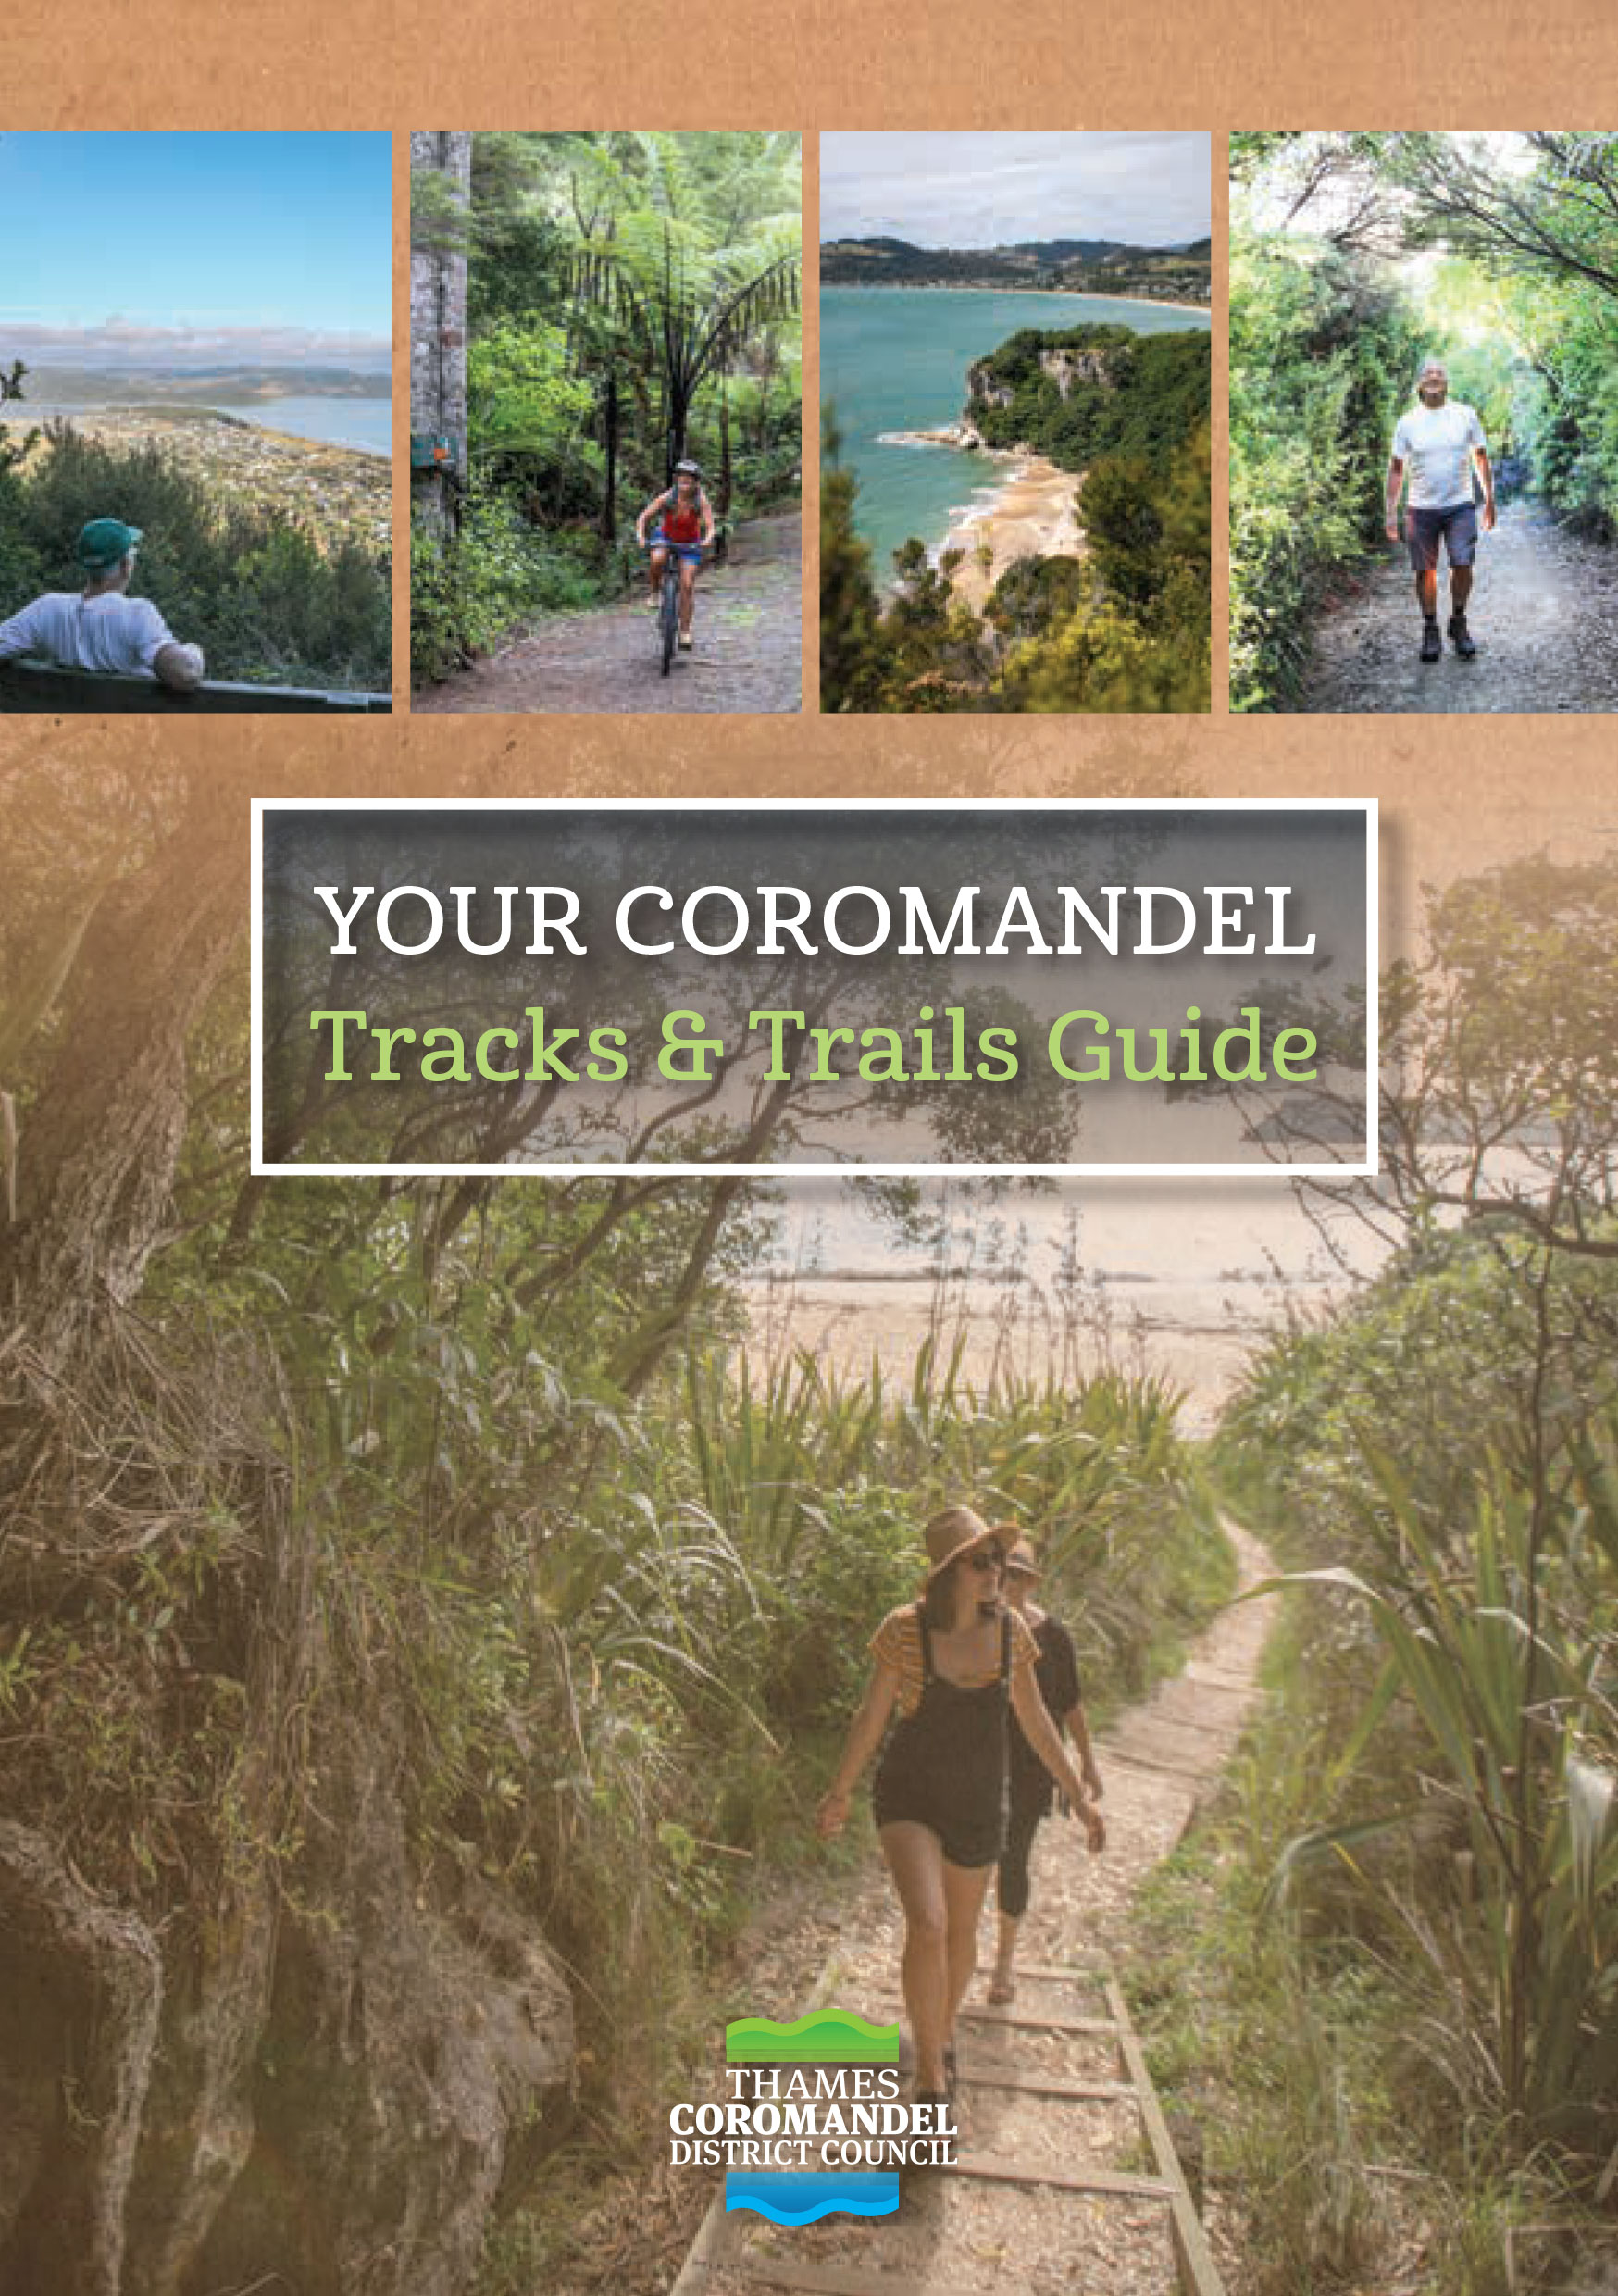 Your Coromandel Tracks and Trails Guide